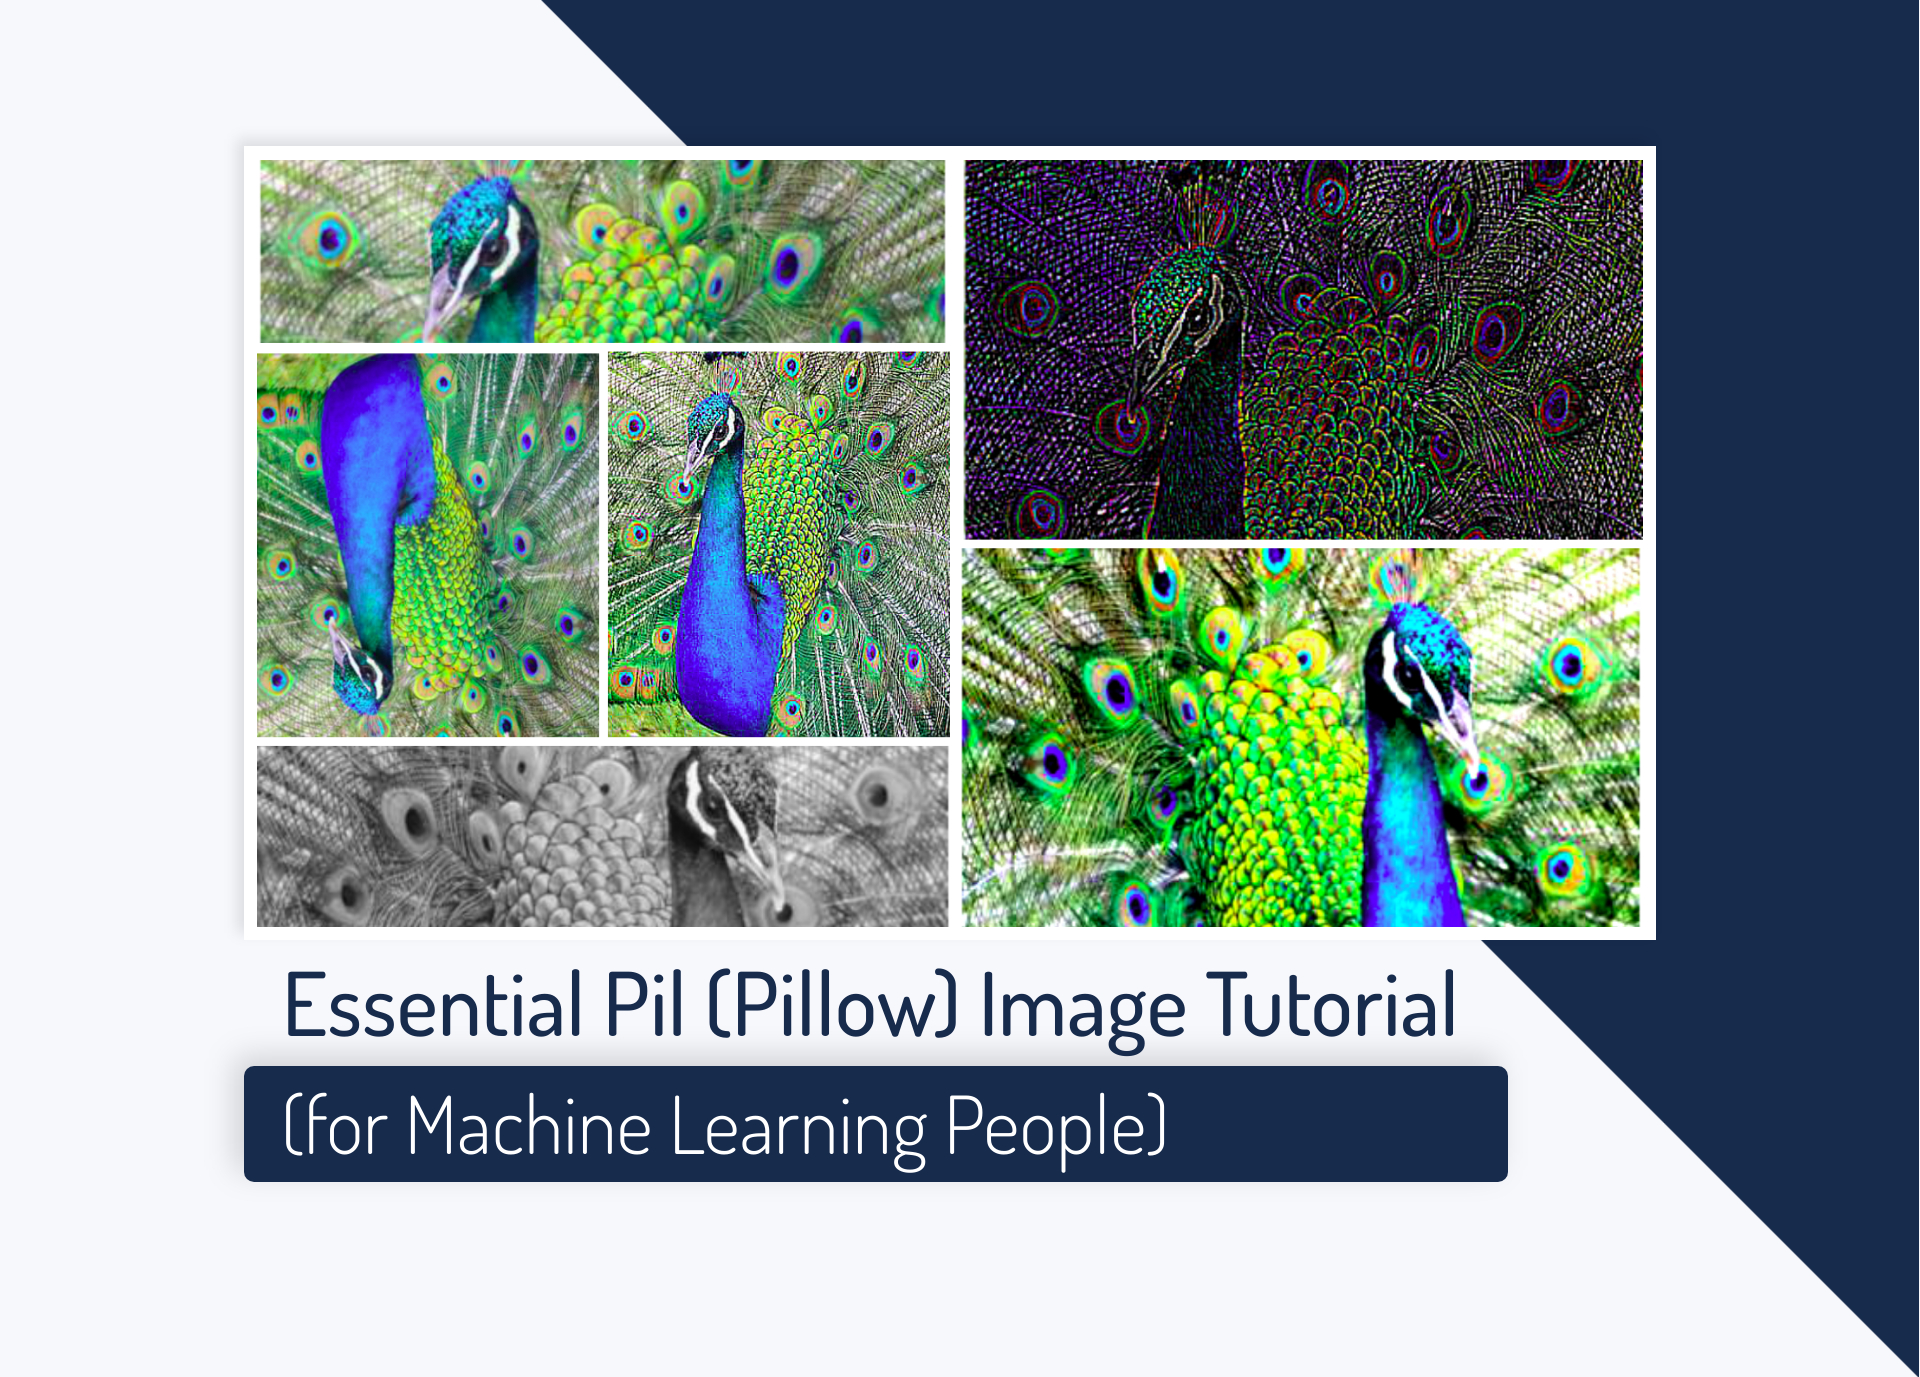 Essential Pil (Pillow) Image Tutorial (for Machine Learning People)